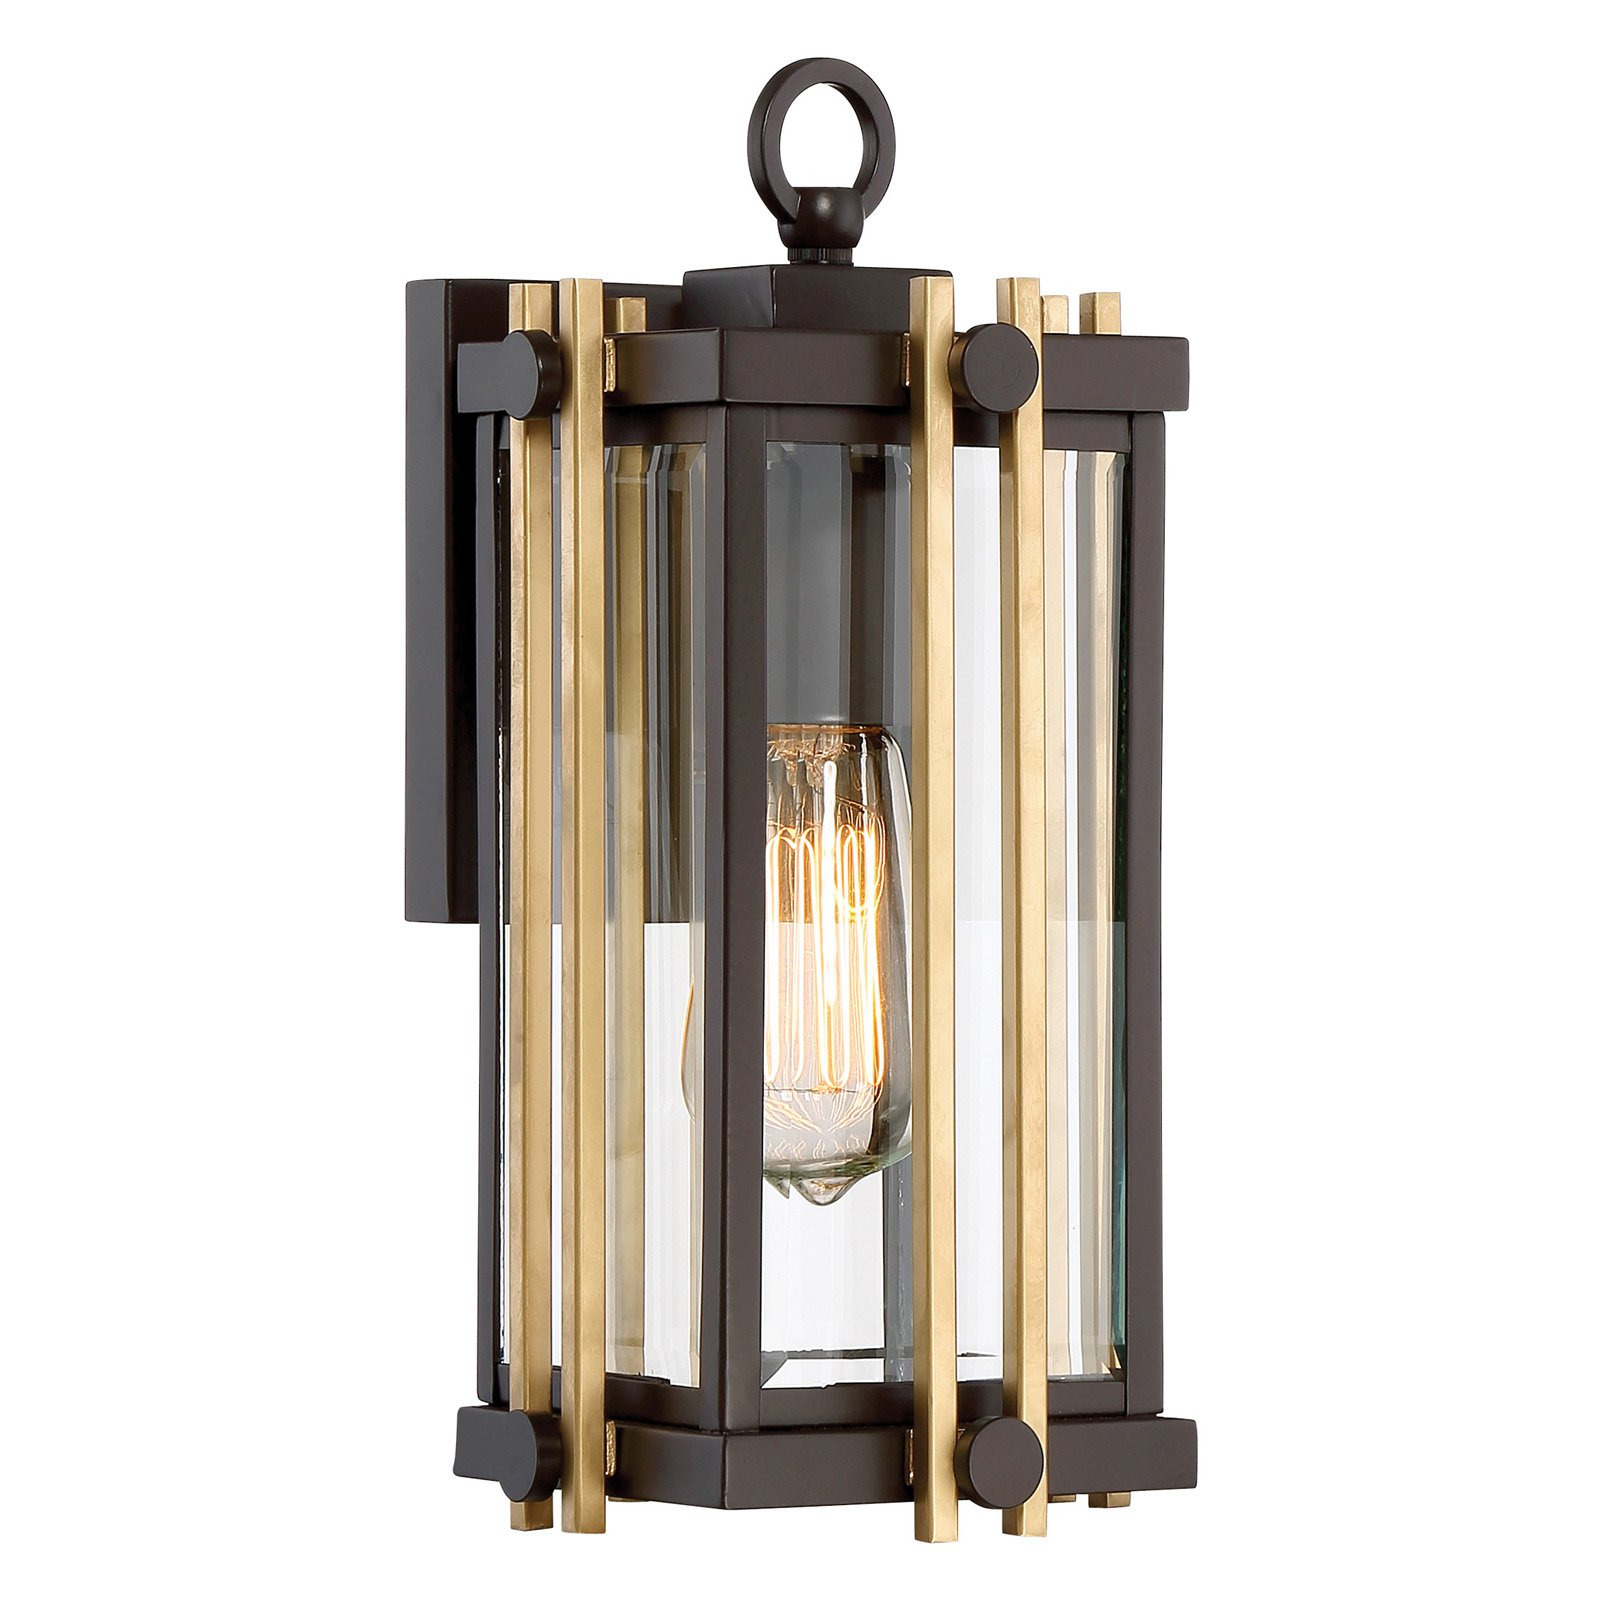 Quoizel Goldenrod GLD84 Outdoor Wall Sconce